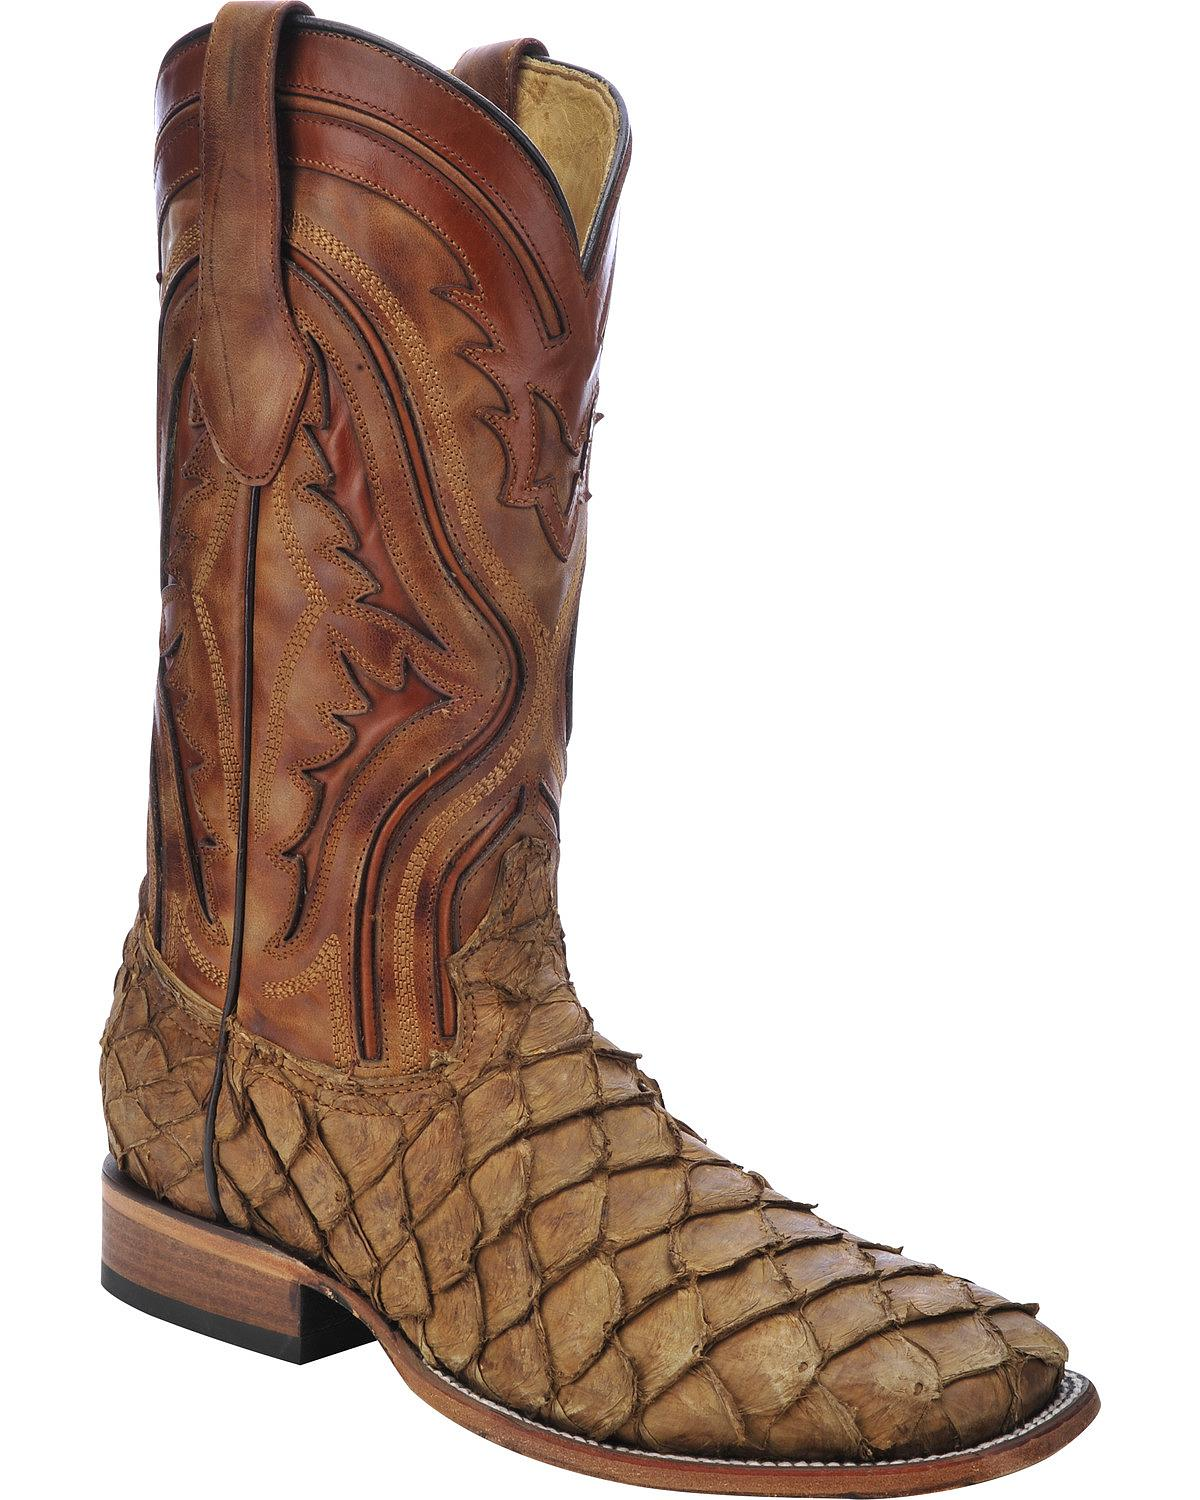 corral men 39 s pirarucu fish cowboy boot square toe c3042